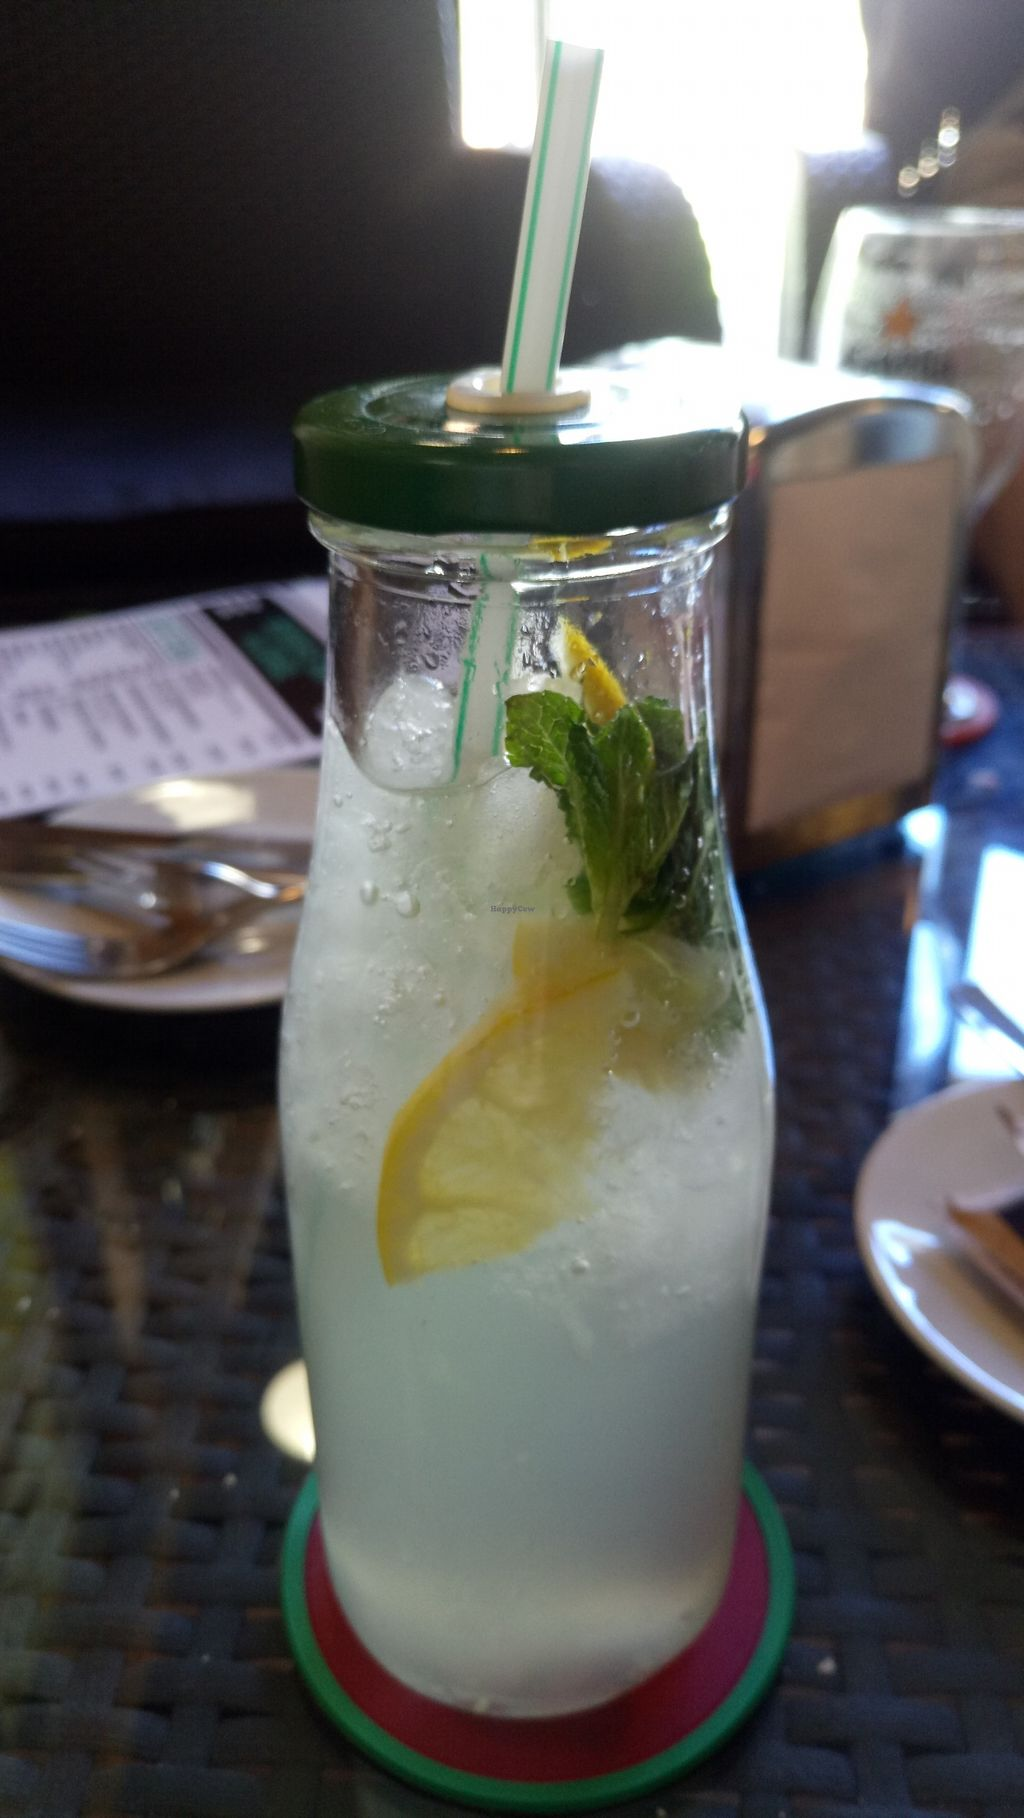 """Photo of Cafe del Far  by <a href=""""/members/profile/M.Ellis"""">M.Ellis</a> <br/>Delicious homemade lemonade  <br/> April 14, 2018  - <a href='/contact/abuse/image/116867/385841'>Report</a>"""